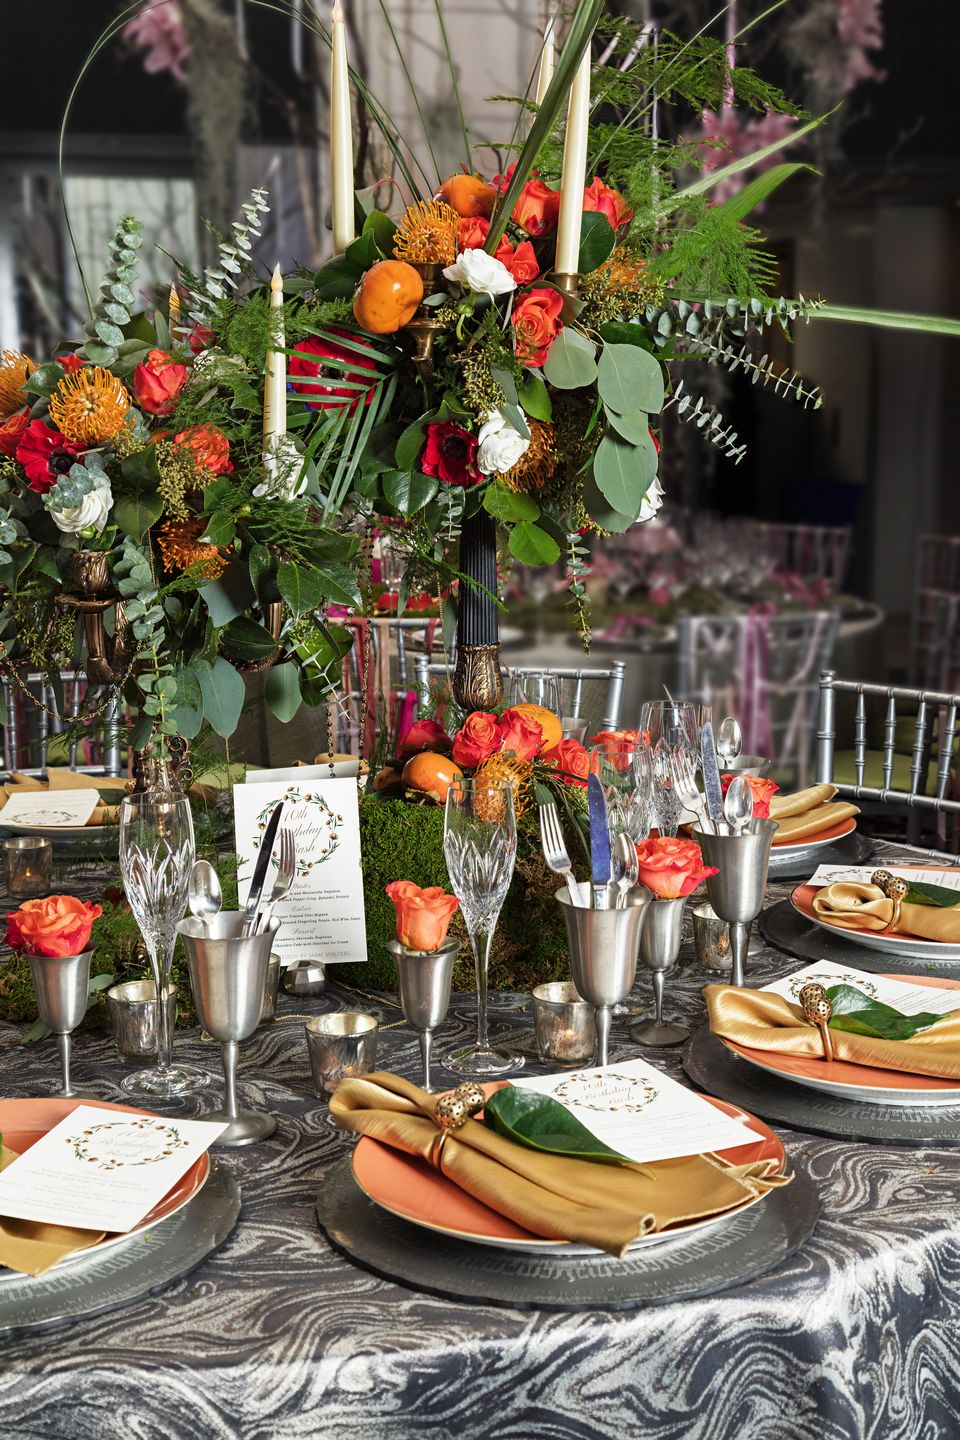 Floral Art & Event Design in Tribeca DownTown, NY & Summit, NJ